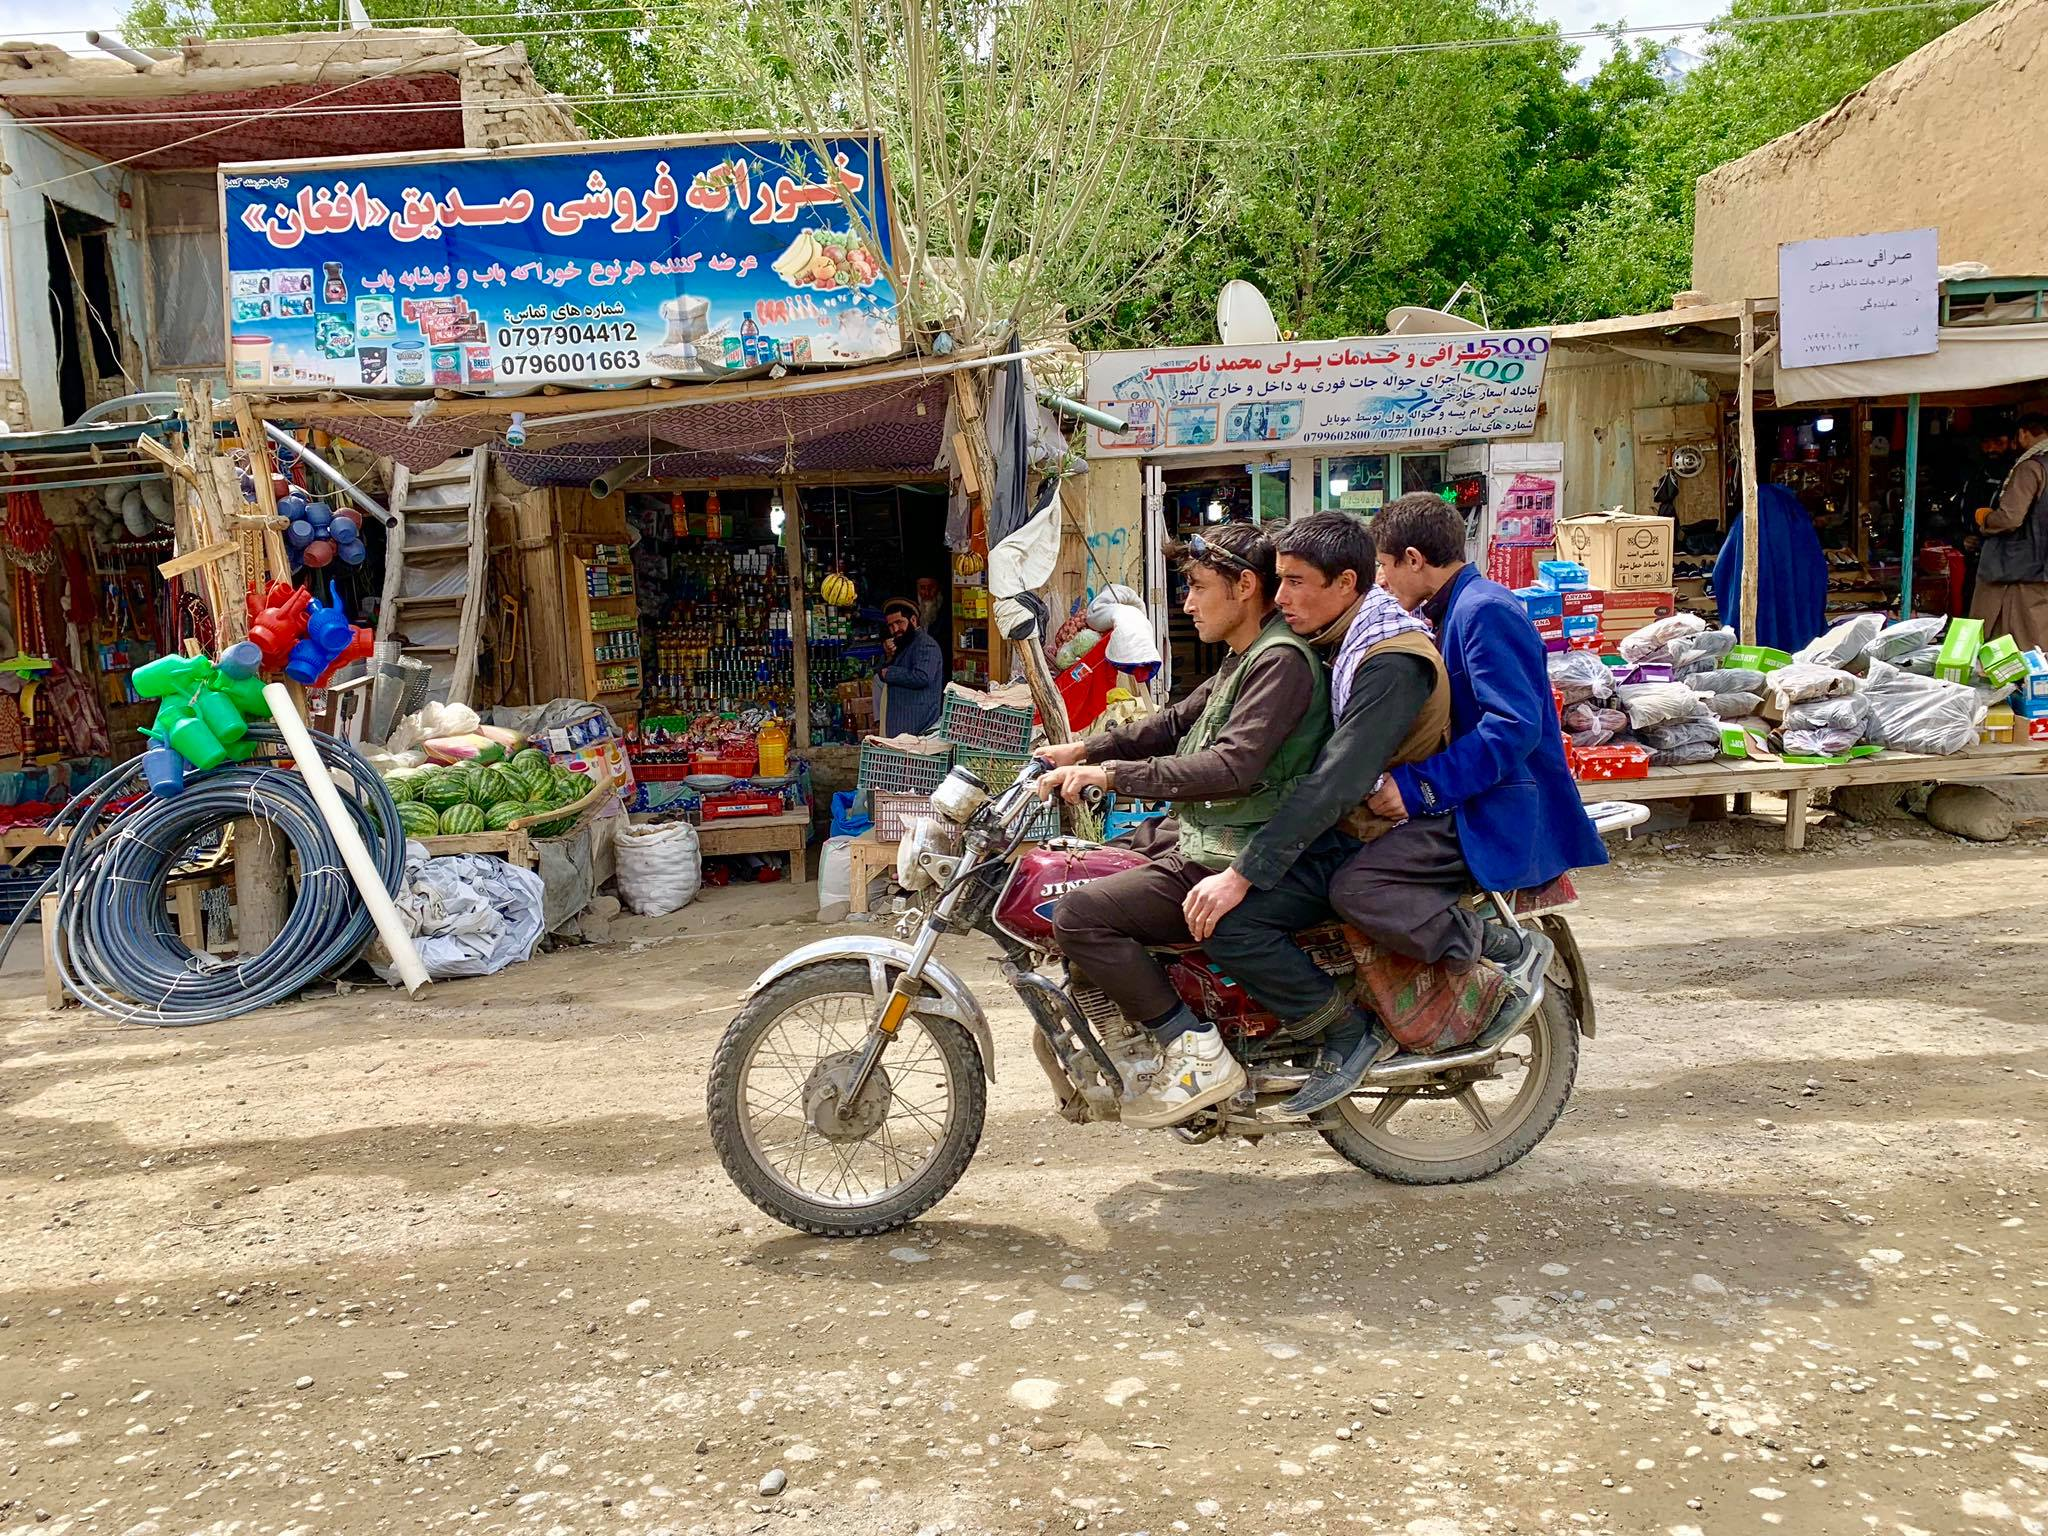 Kach Solo Travels in 2019 AFGHANISTAN, my 127th country5.jpg